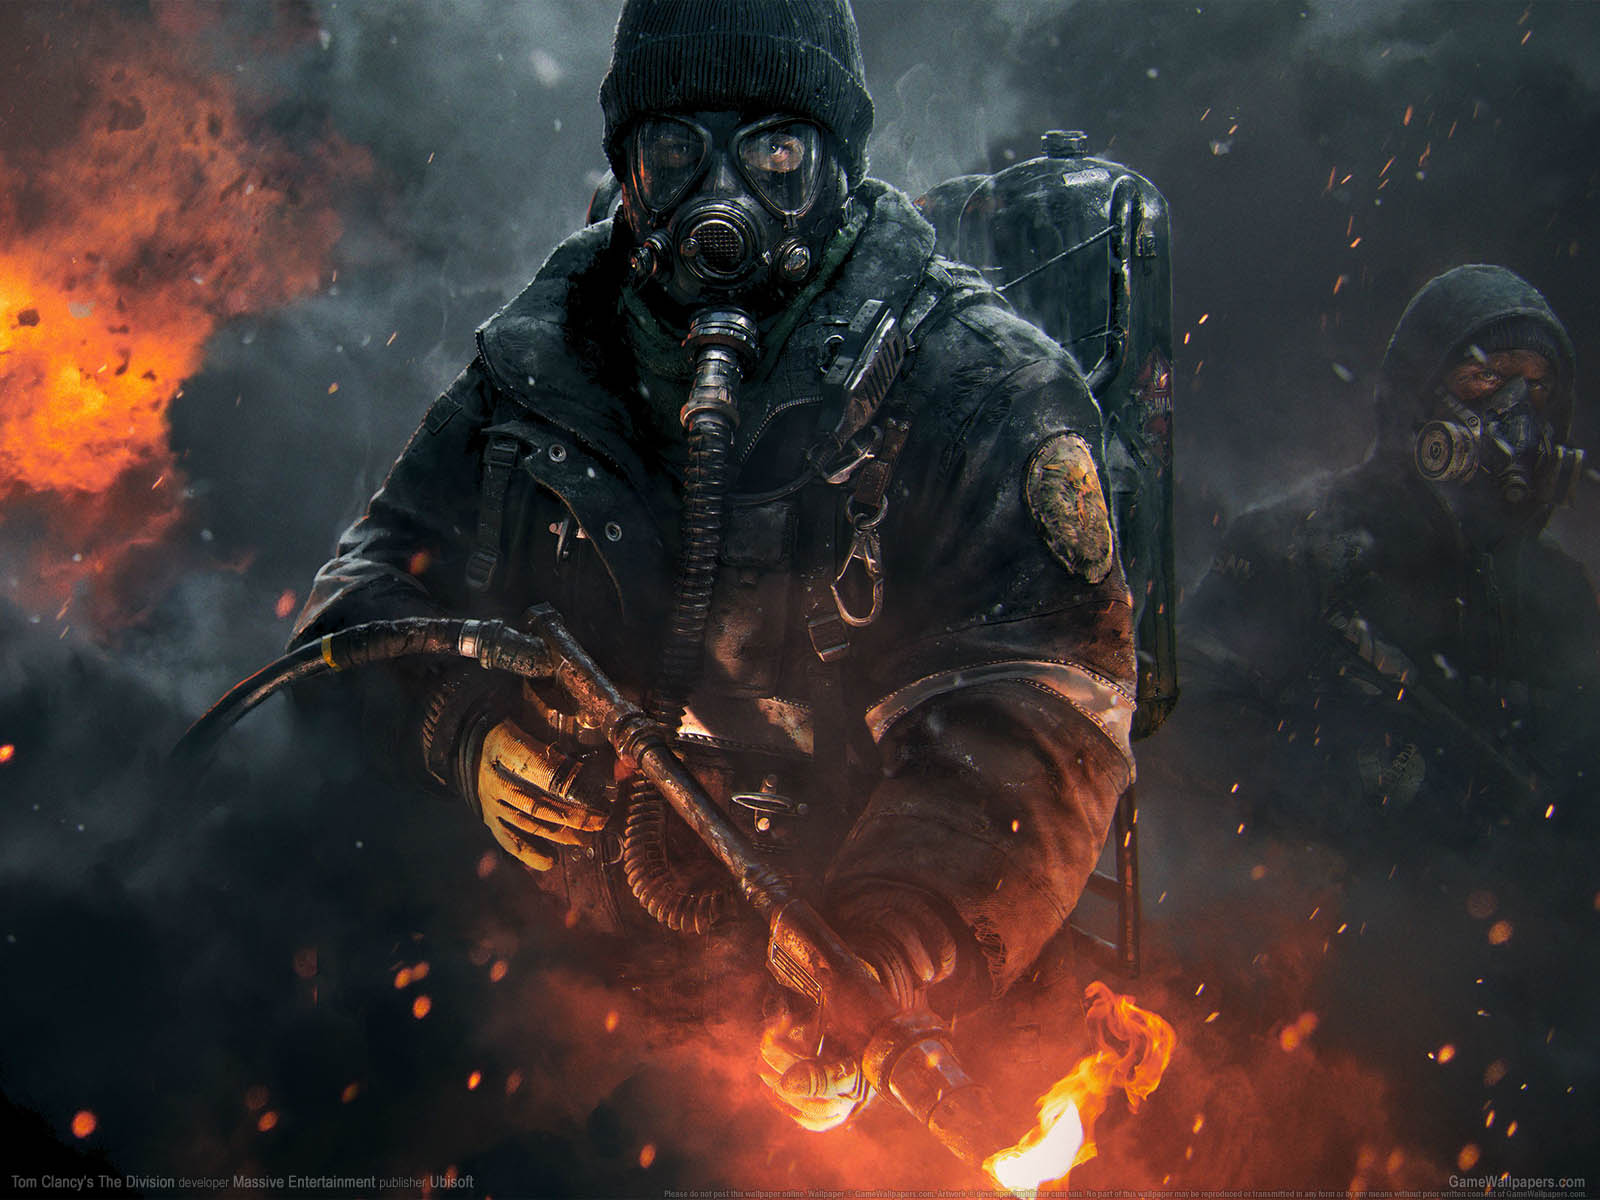 Tom Clancy's The Divisionνmmer=05 achtergrond  1600x1200